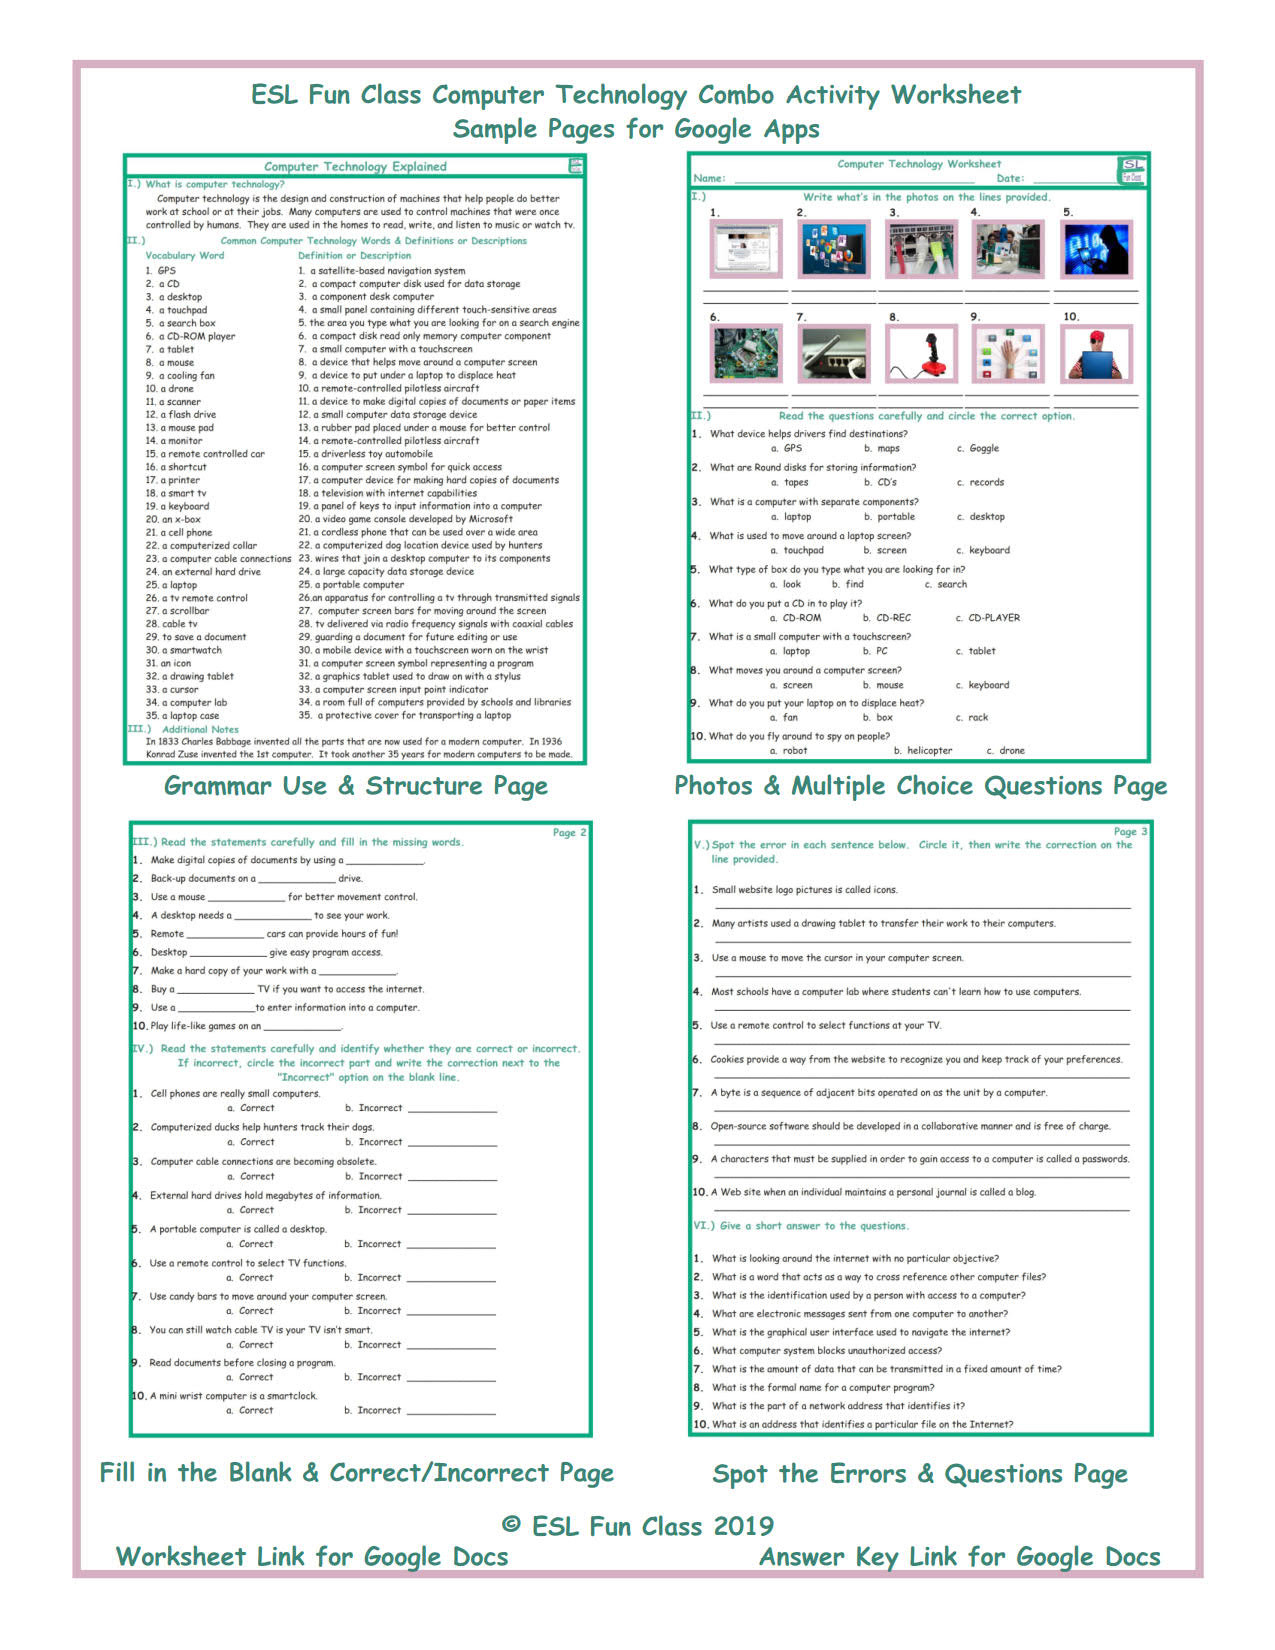 puter Technology Interactive Worksheets for Google Apps